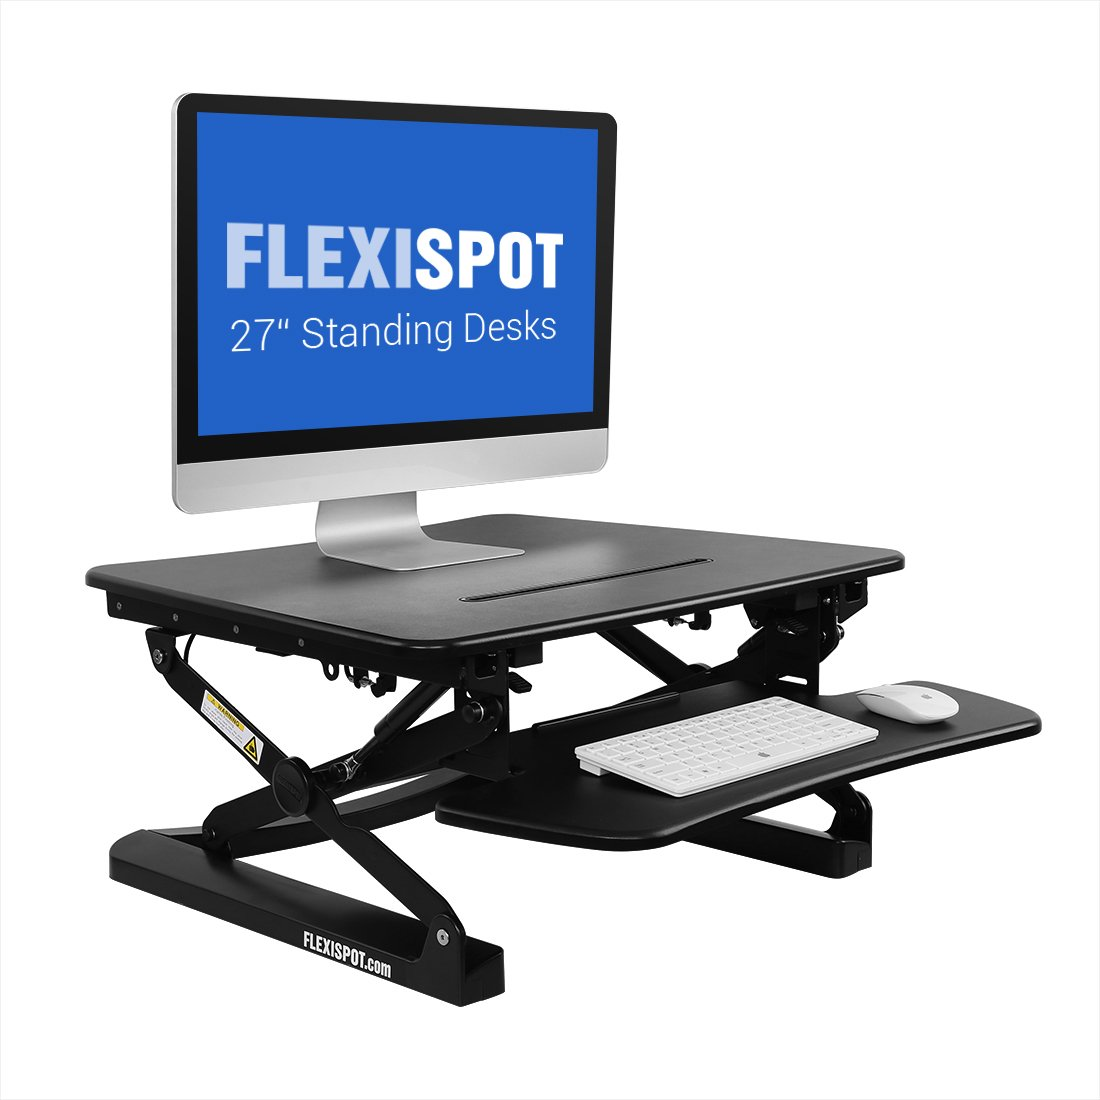 dsc sit d workfit raising desk stand review deskhacks ergotron